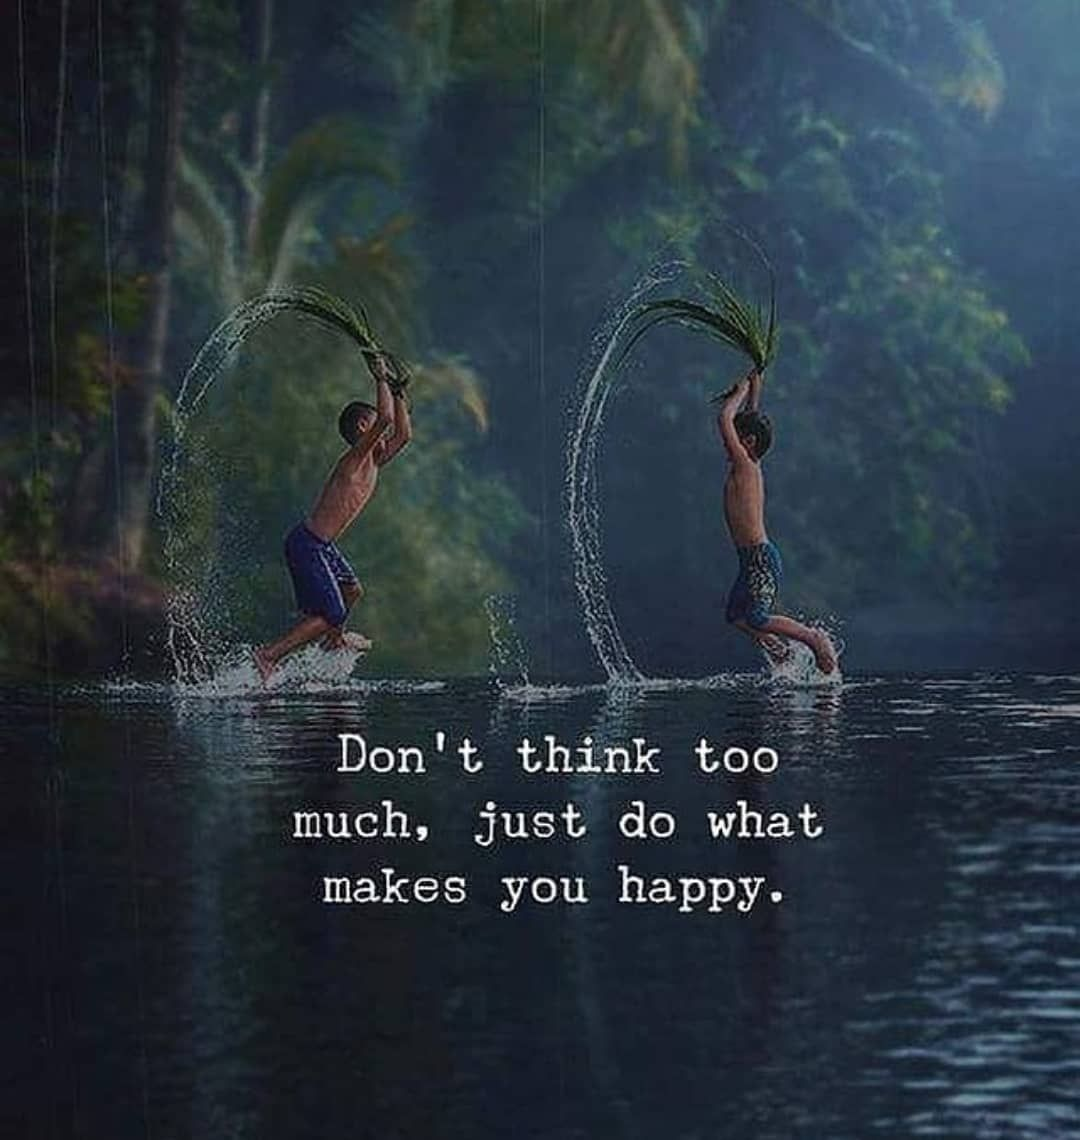 Life Quotes Don T Think Too Much Just Do What Makes You Happy Dont Think Too Much Inspirational Quotes Motivation Thinking Quotes